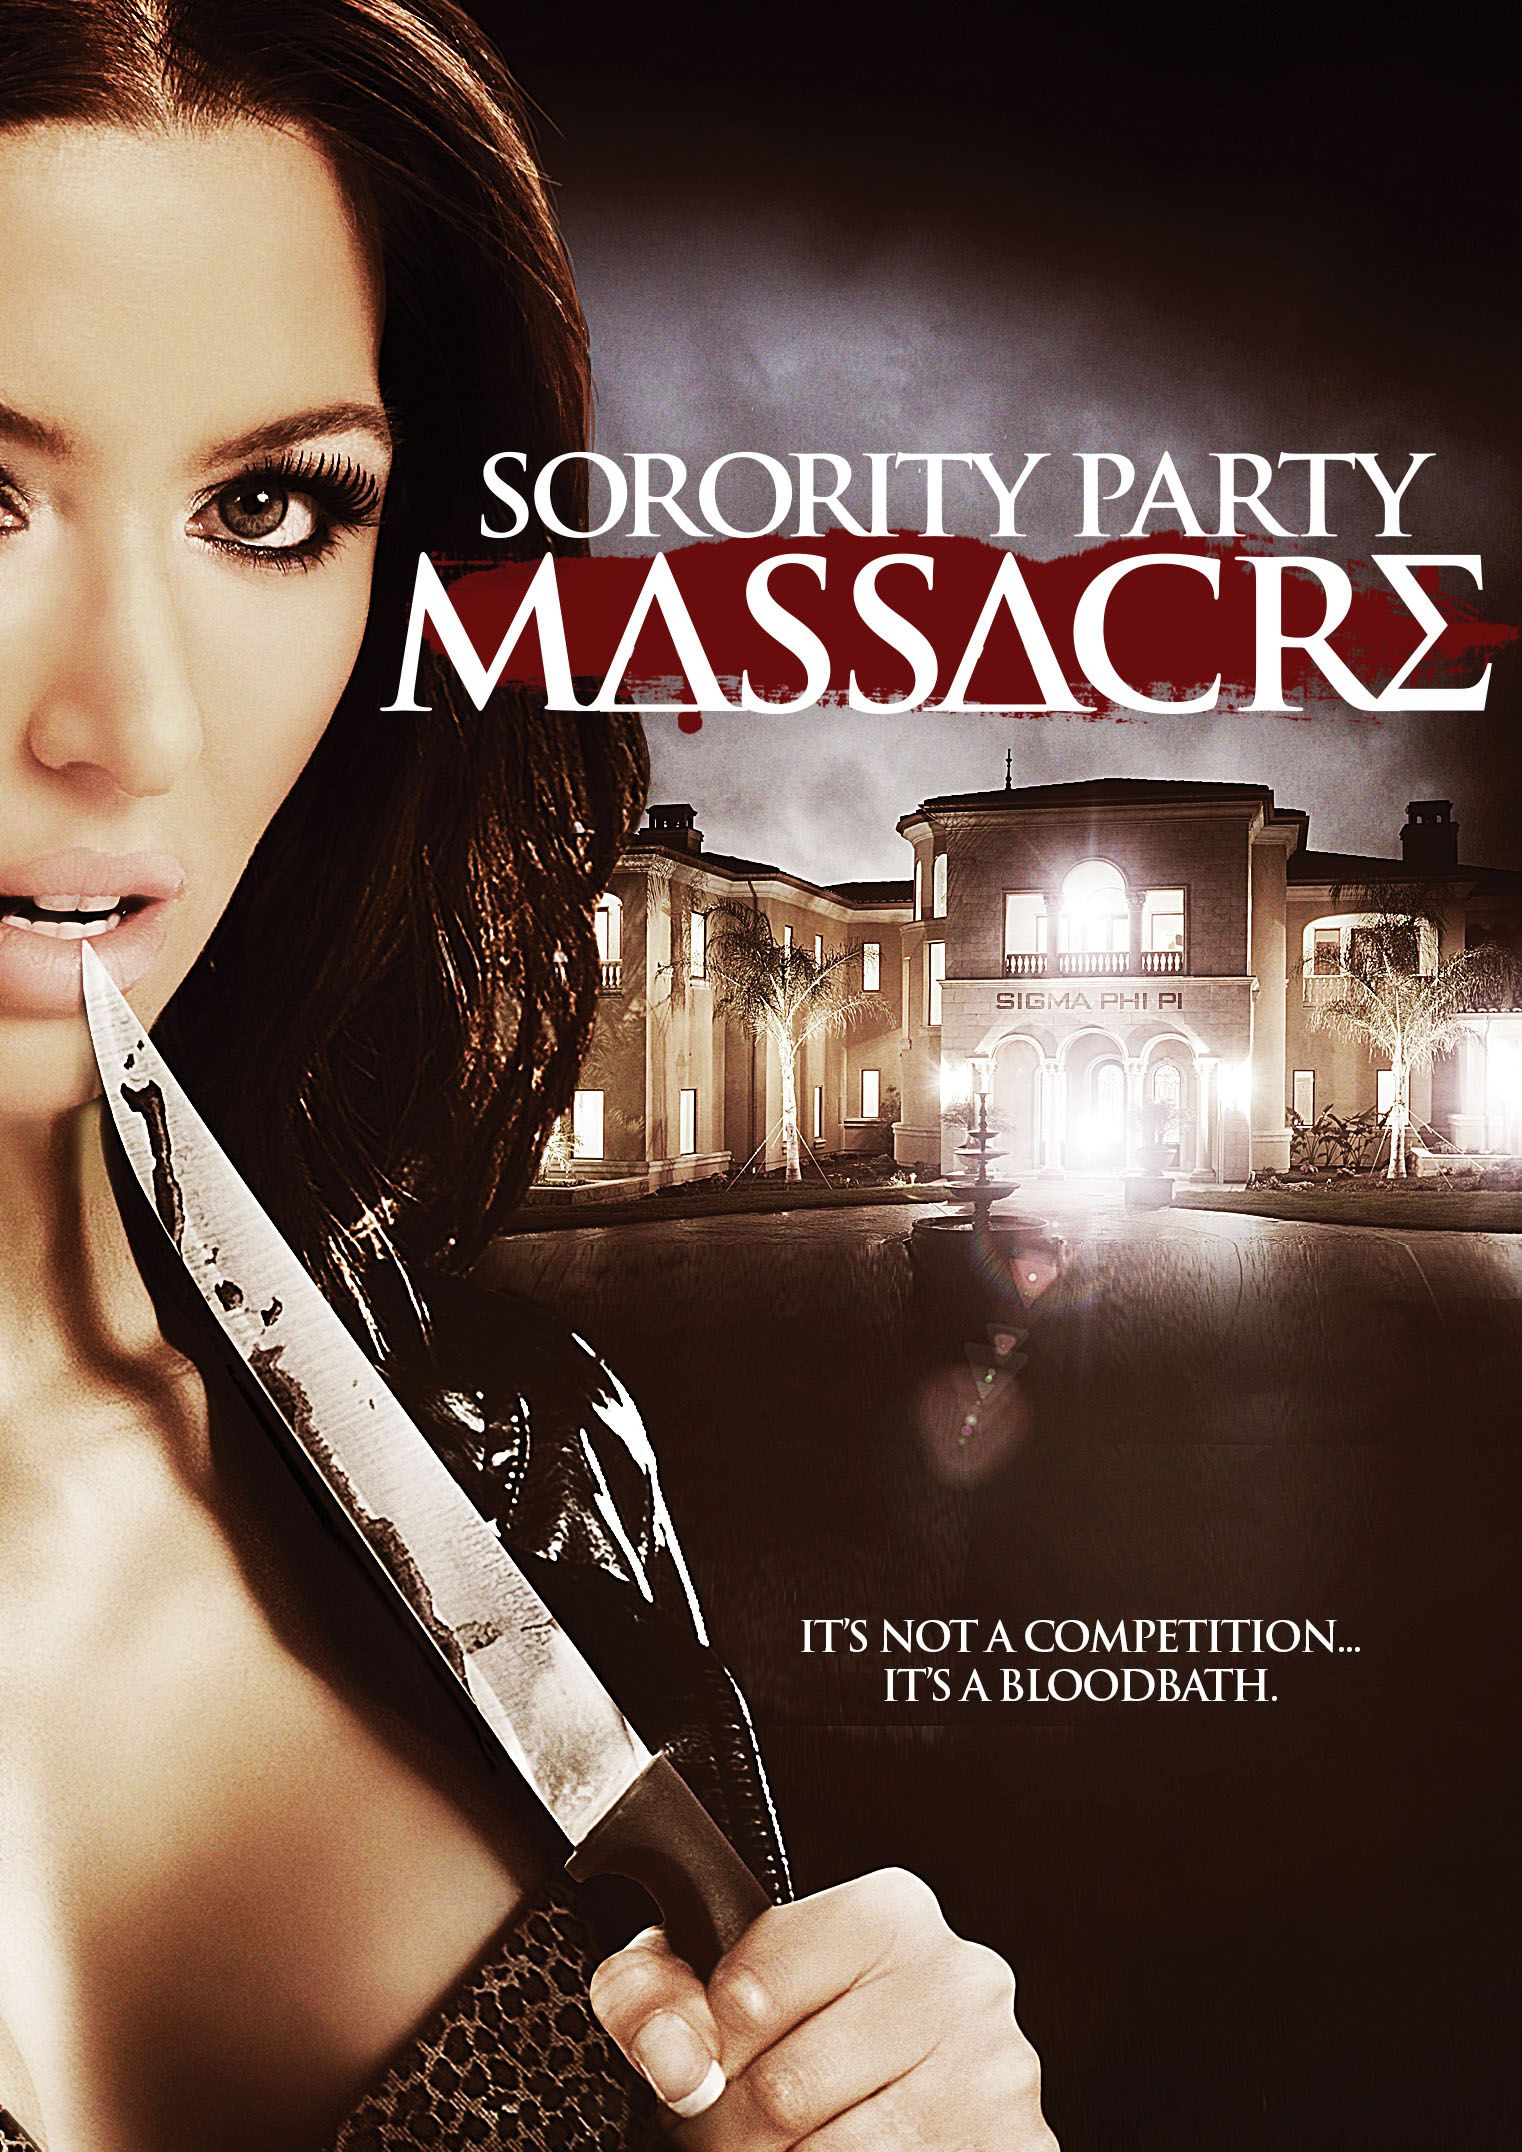 Sorority house massacre trailer